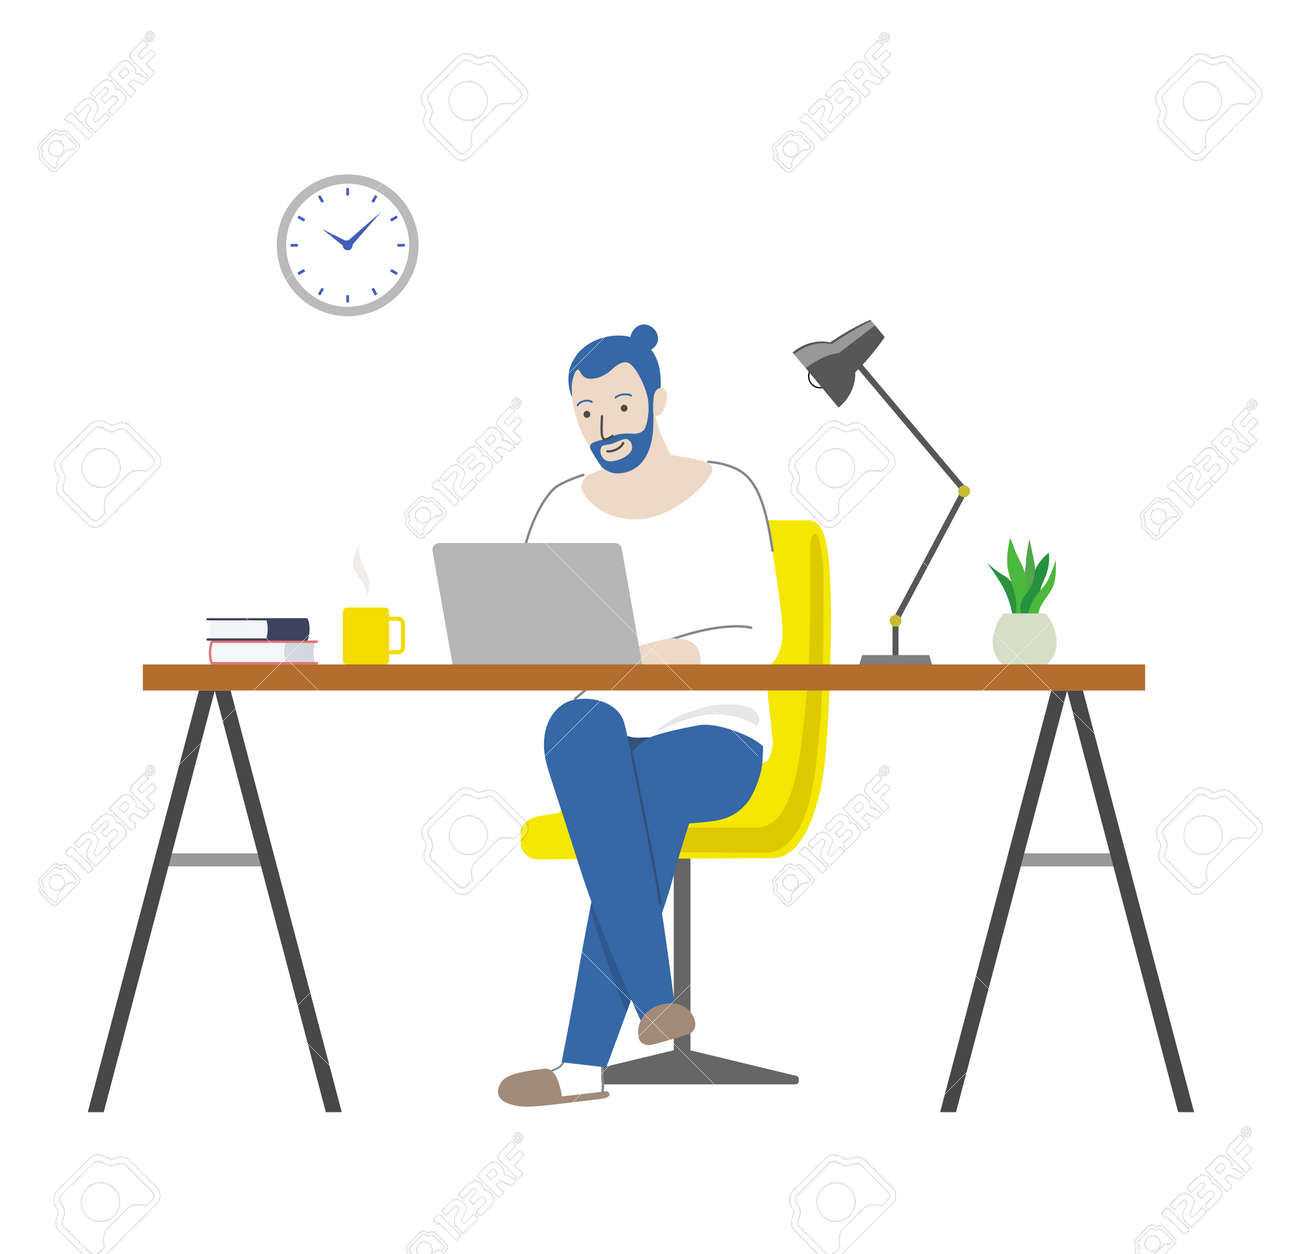 Man working from home (table, chair and laptop) - 168896486